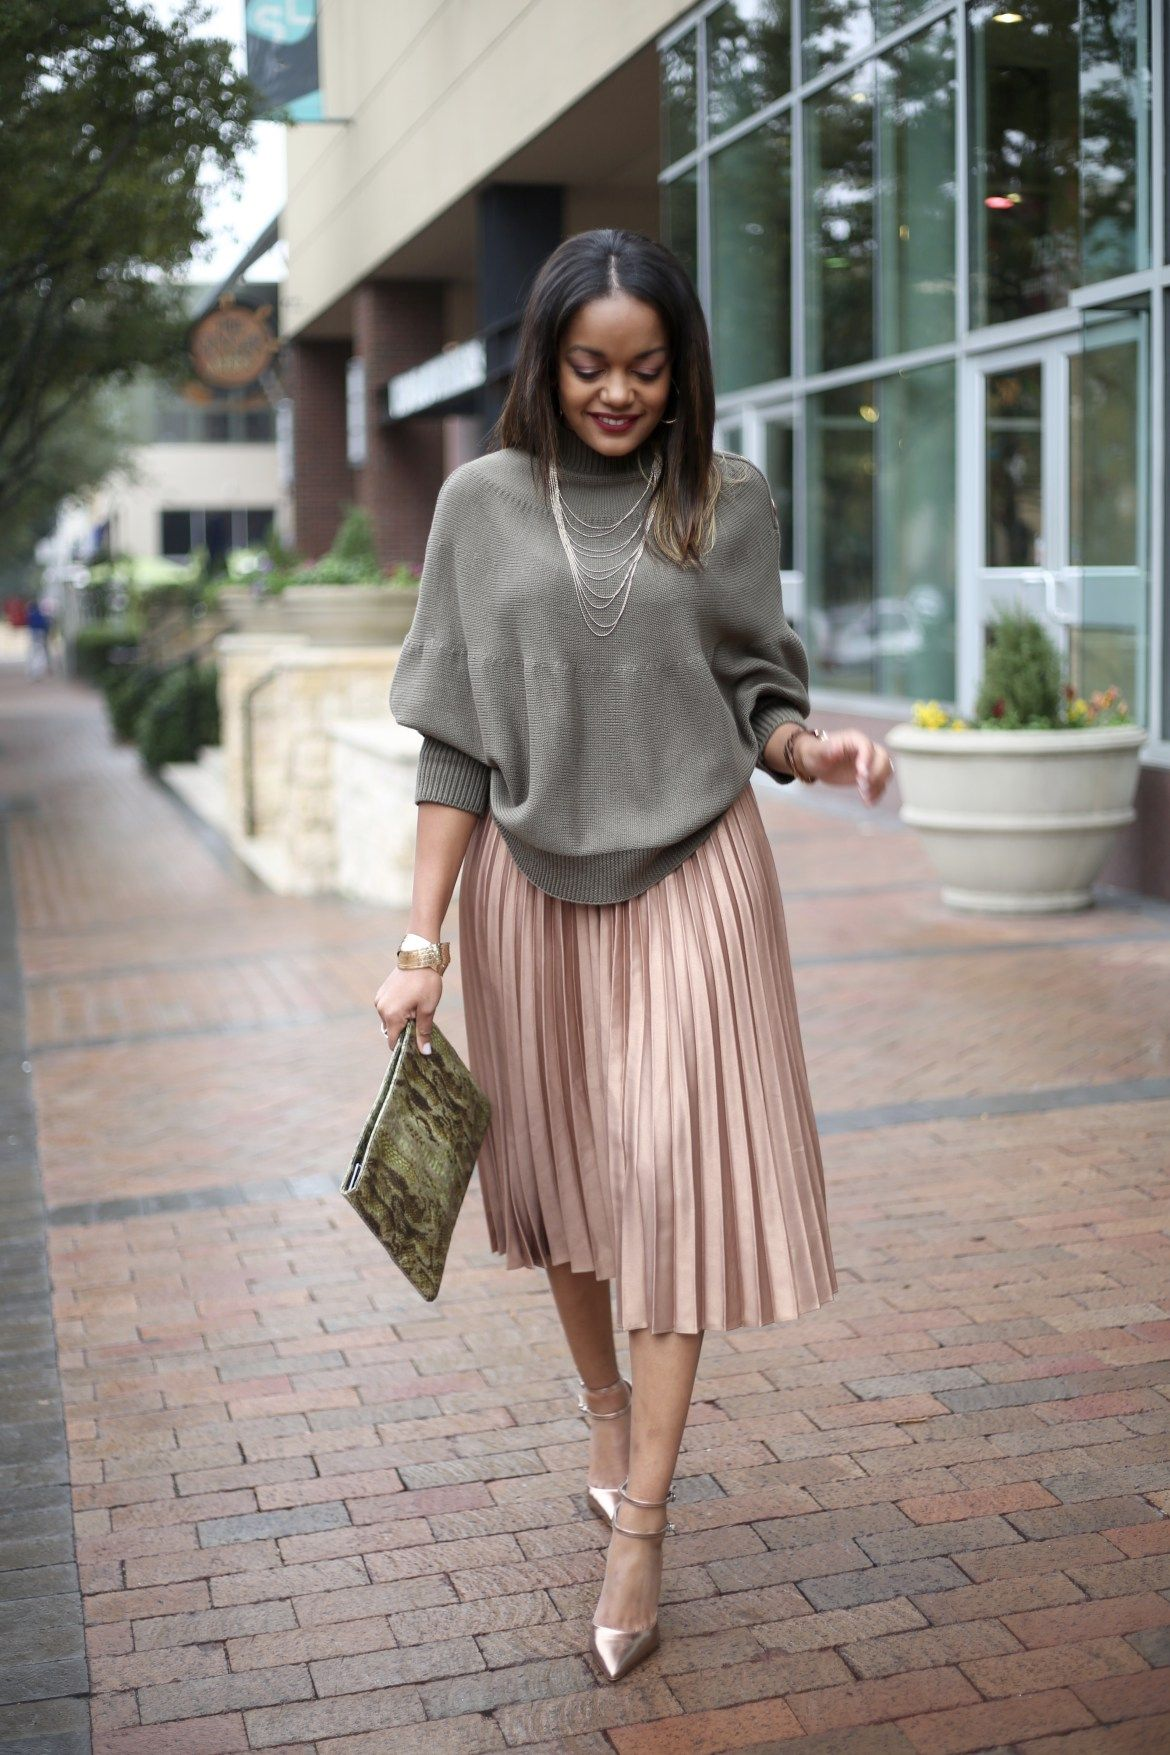 6d265ff160 One of the best fashion trends for 2016 is the pleated midi skirt! I have  been crushing hard on this ASOS pleated midi skirt and had to have it!